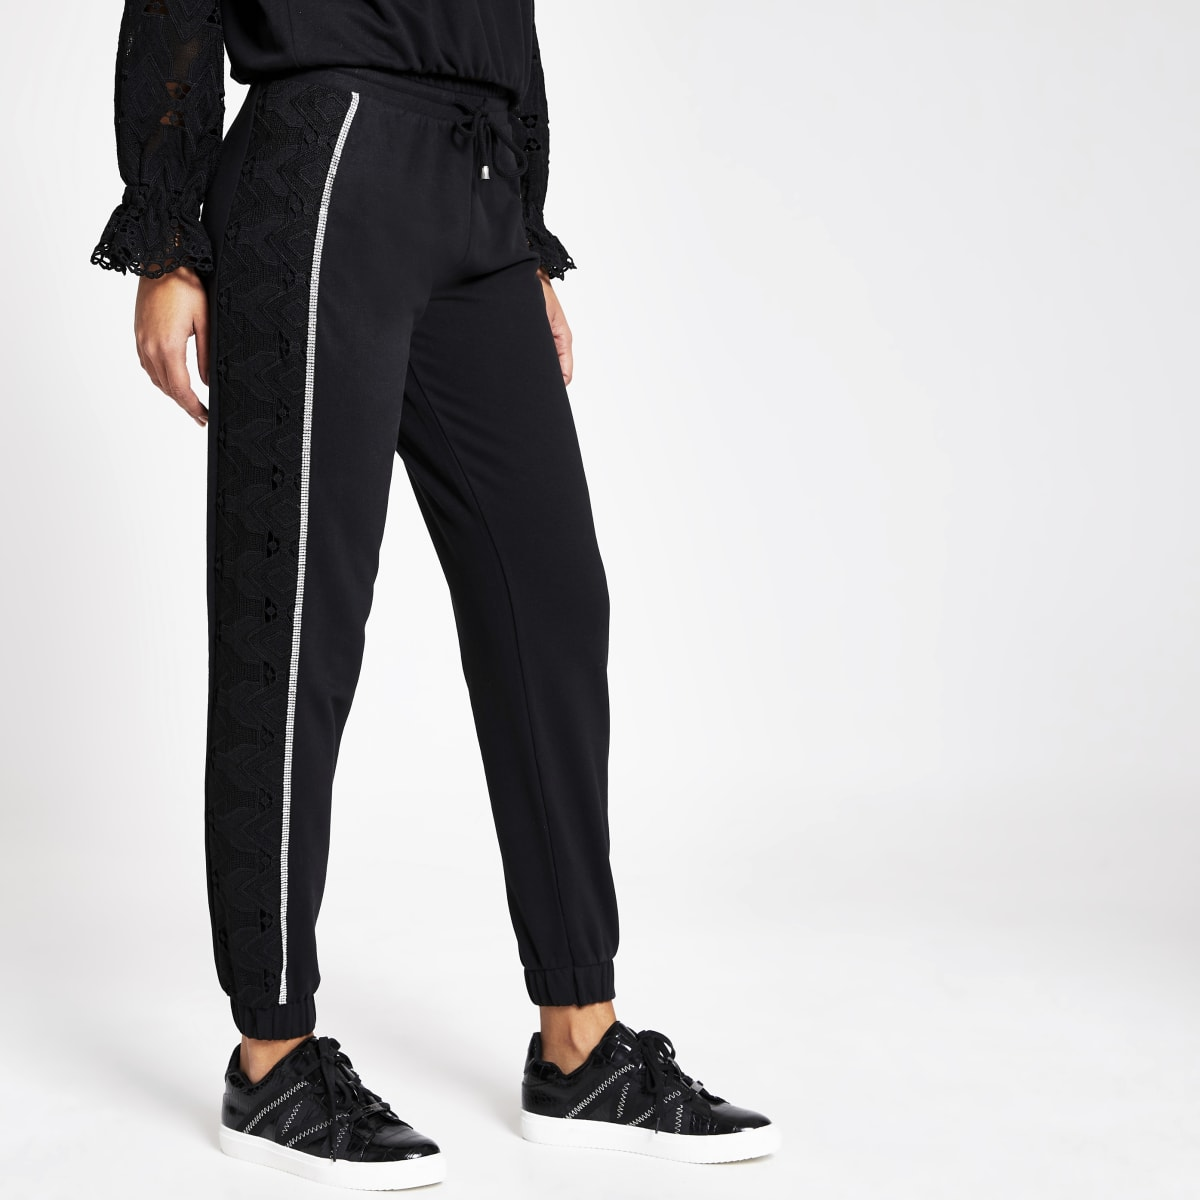 Zwarte loose-fit joggingbroek met broderie langs zijkant